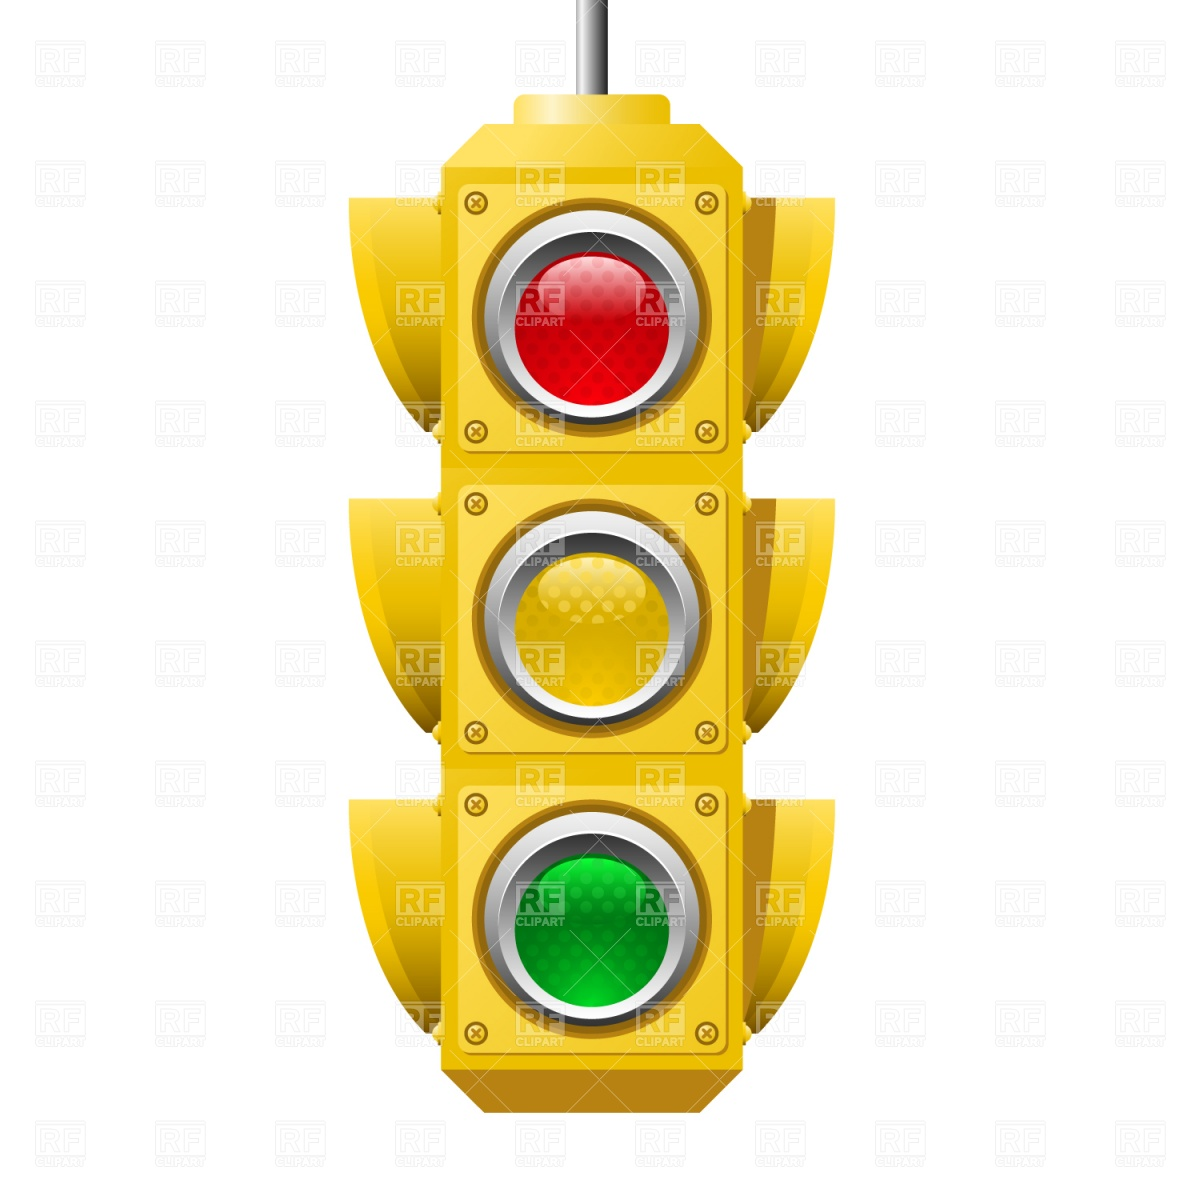 Stop Clipart Png Stop Light Clipart Traffic